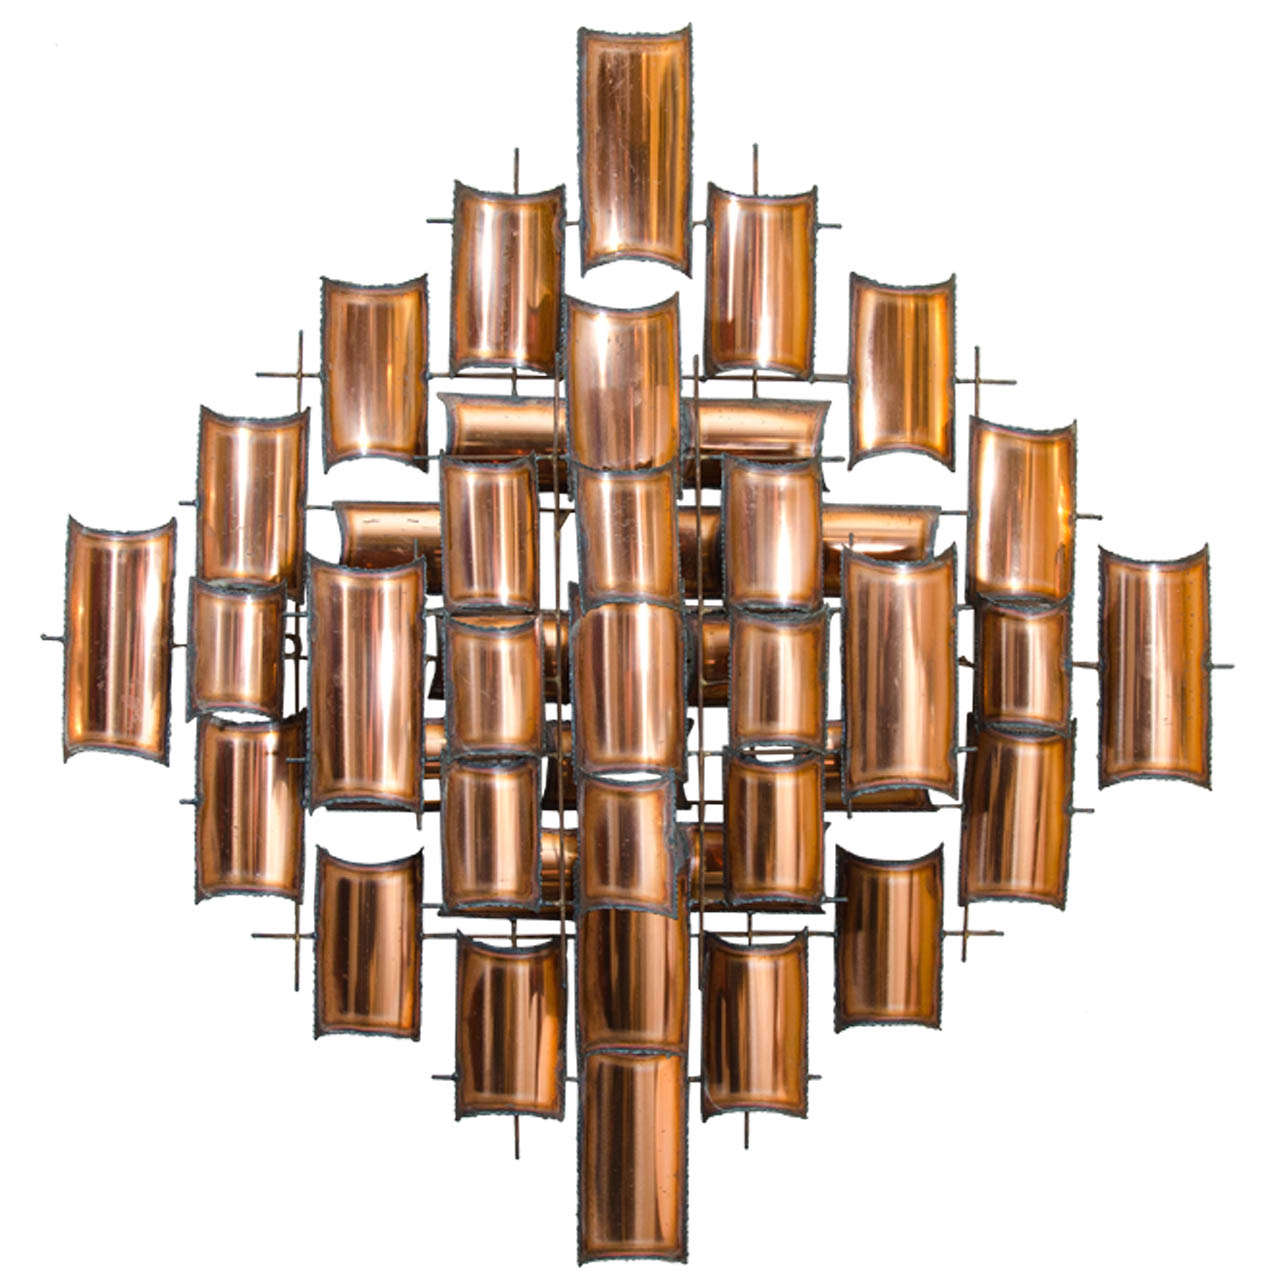 Torch cut copper wall art sculpture for sale at 1stdibs for Copper wall art